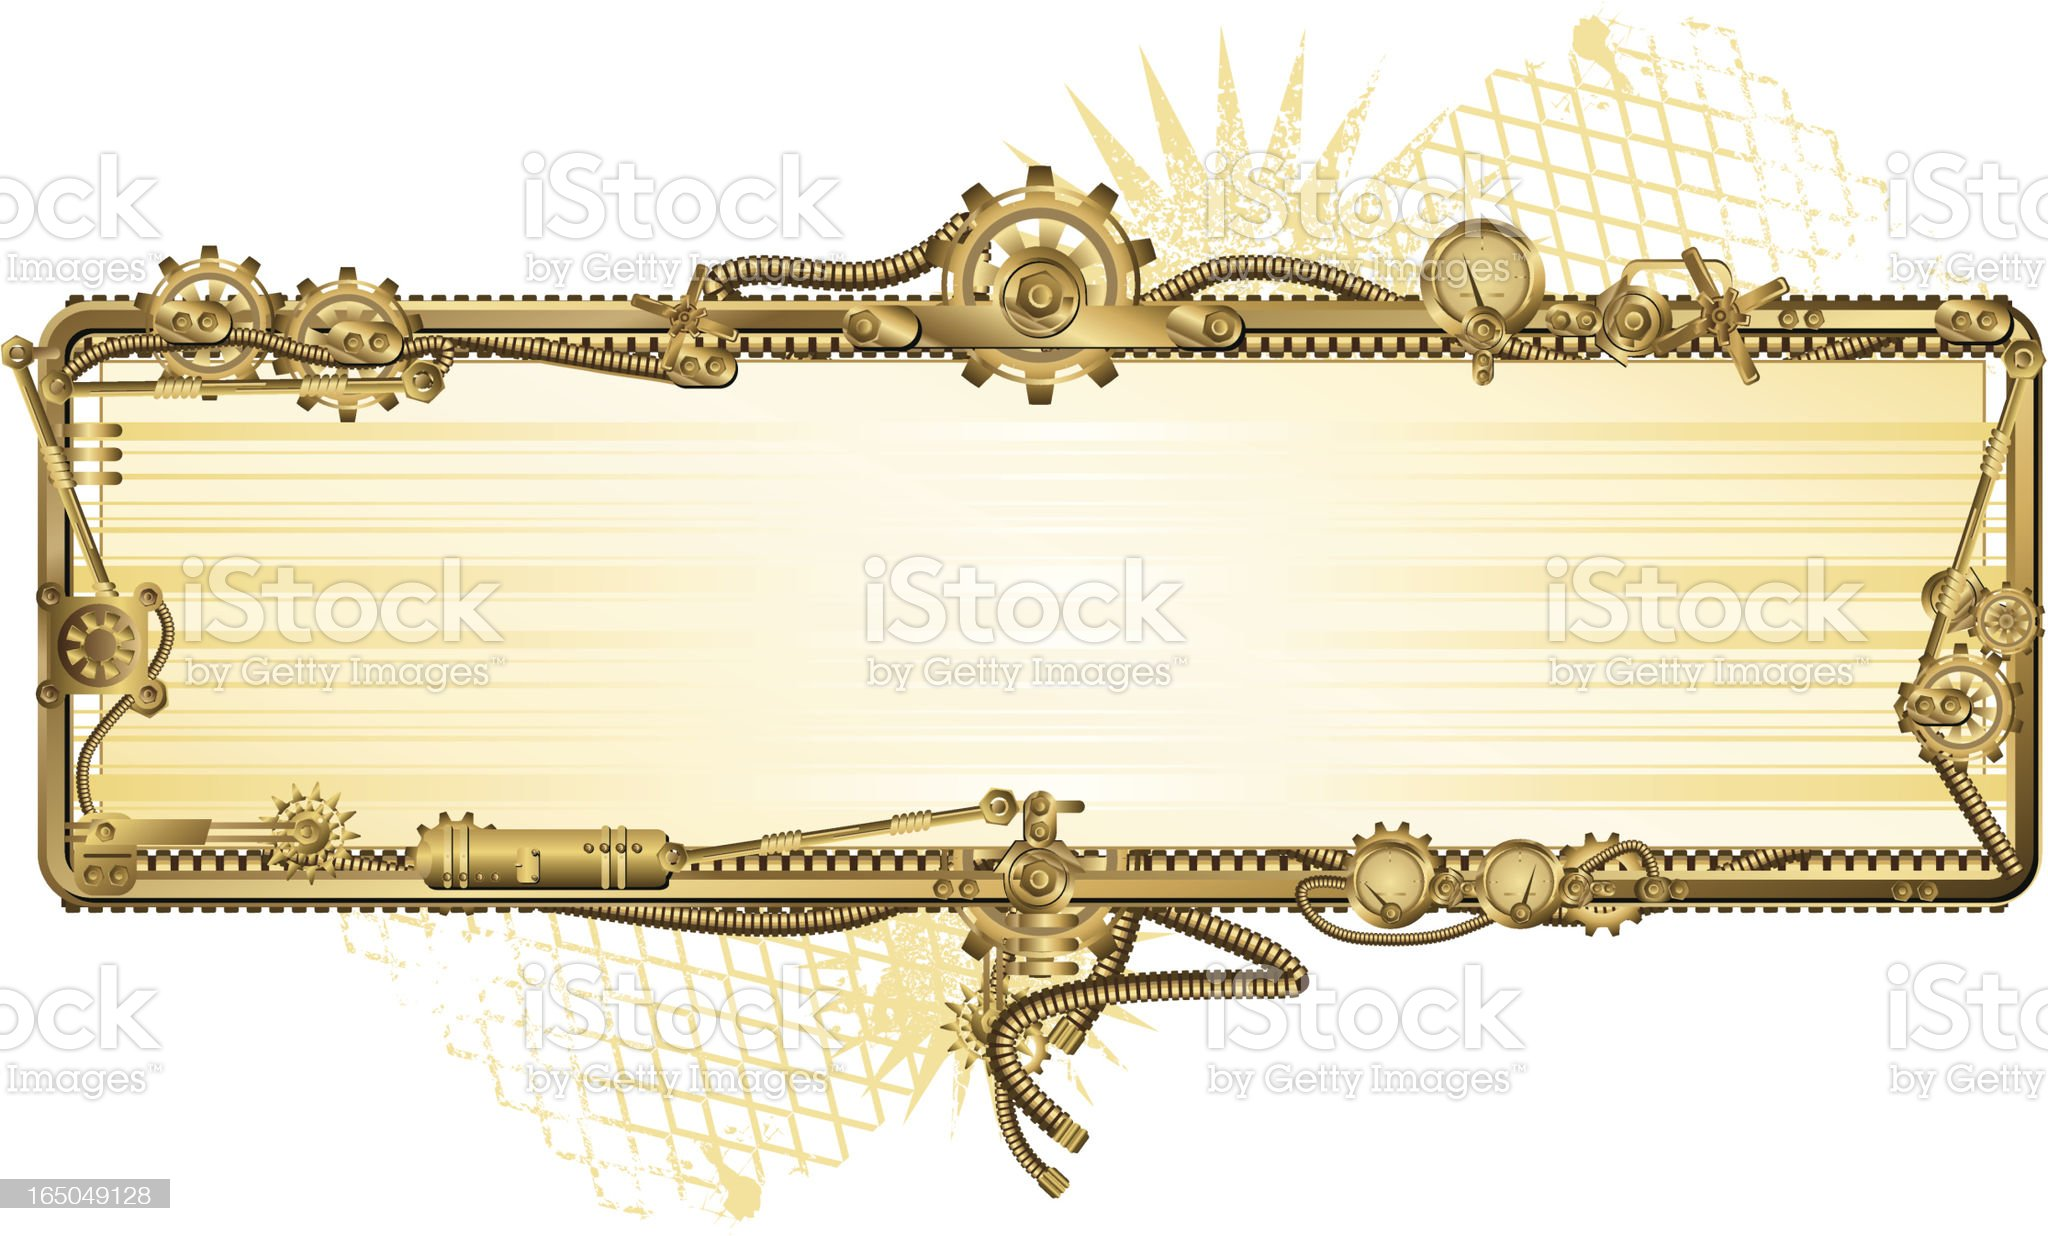 Industrial frame royalty-free stock vector art